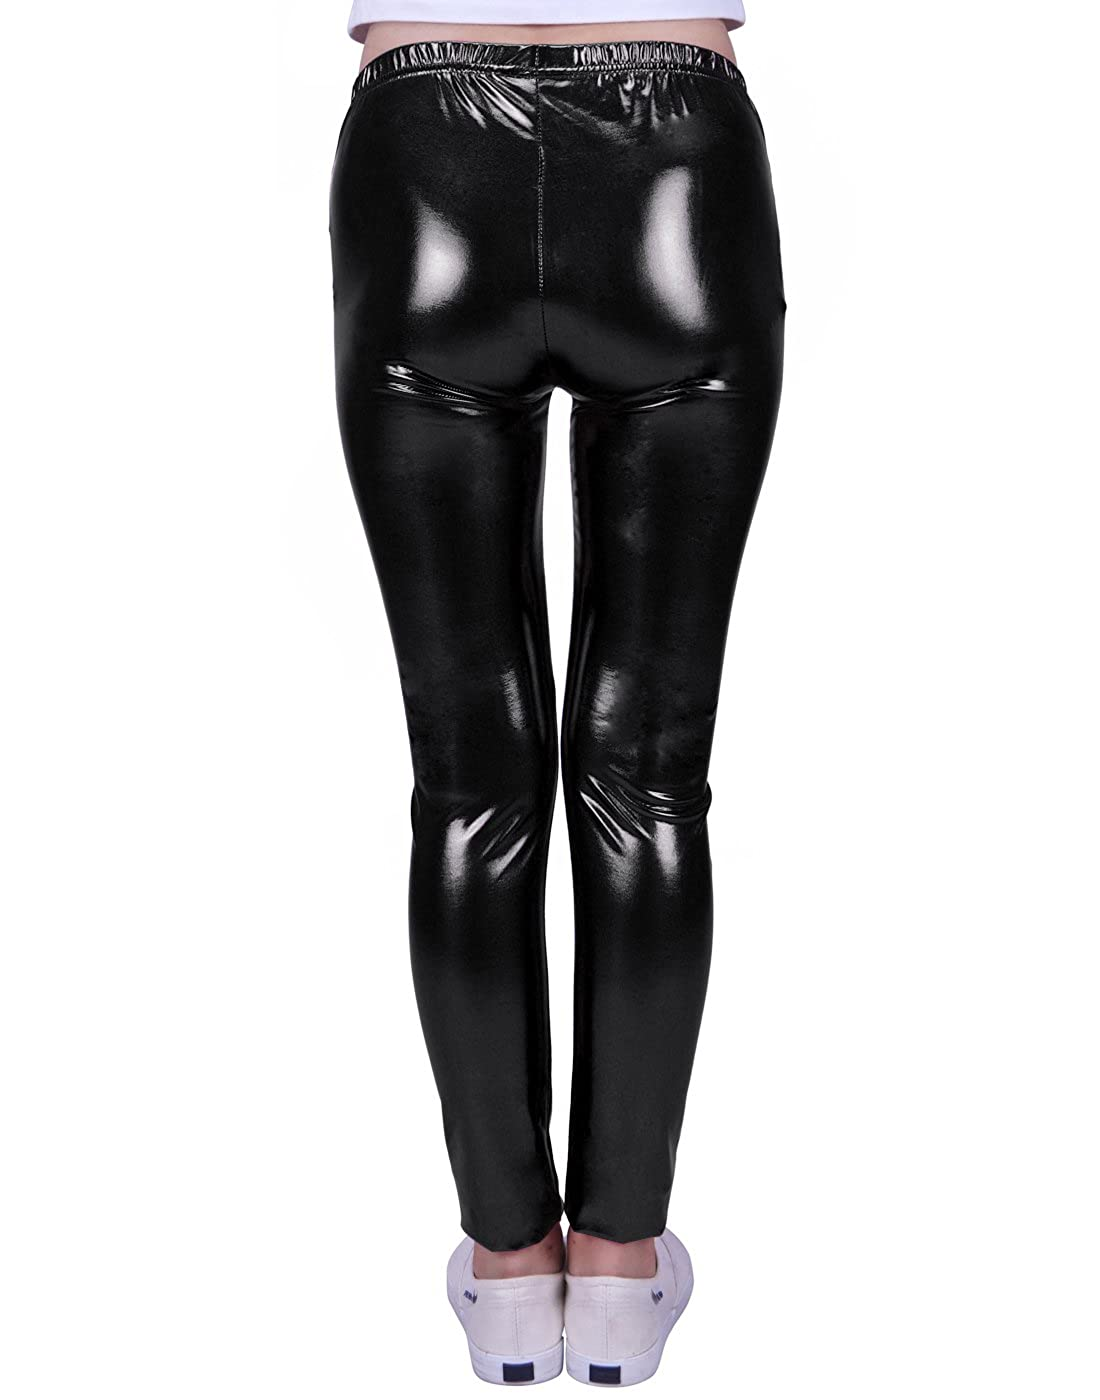 238df04293ed8 HDE Girls Shiny Wet Look Leggings Kids Liquid Metallic Footless Tights  (4T-12): Amazon.ca: Clothing & Accessories